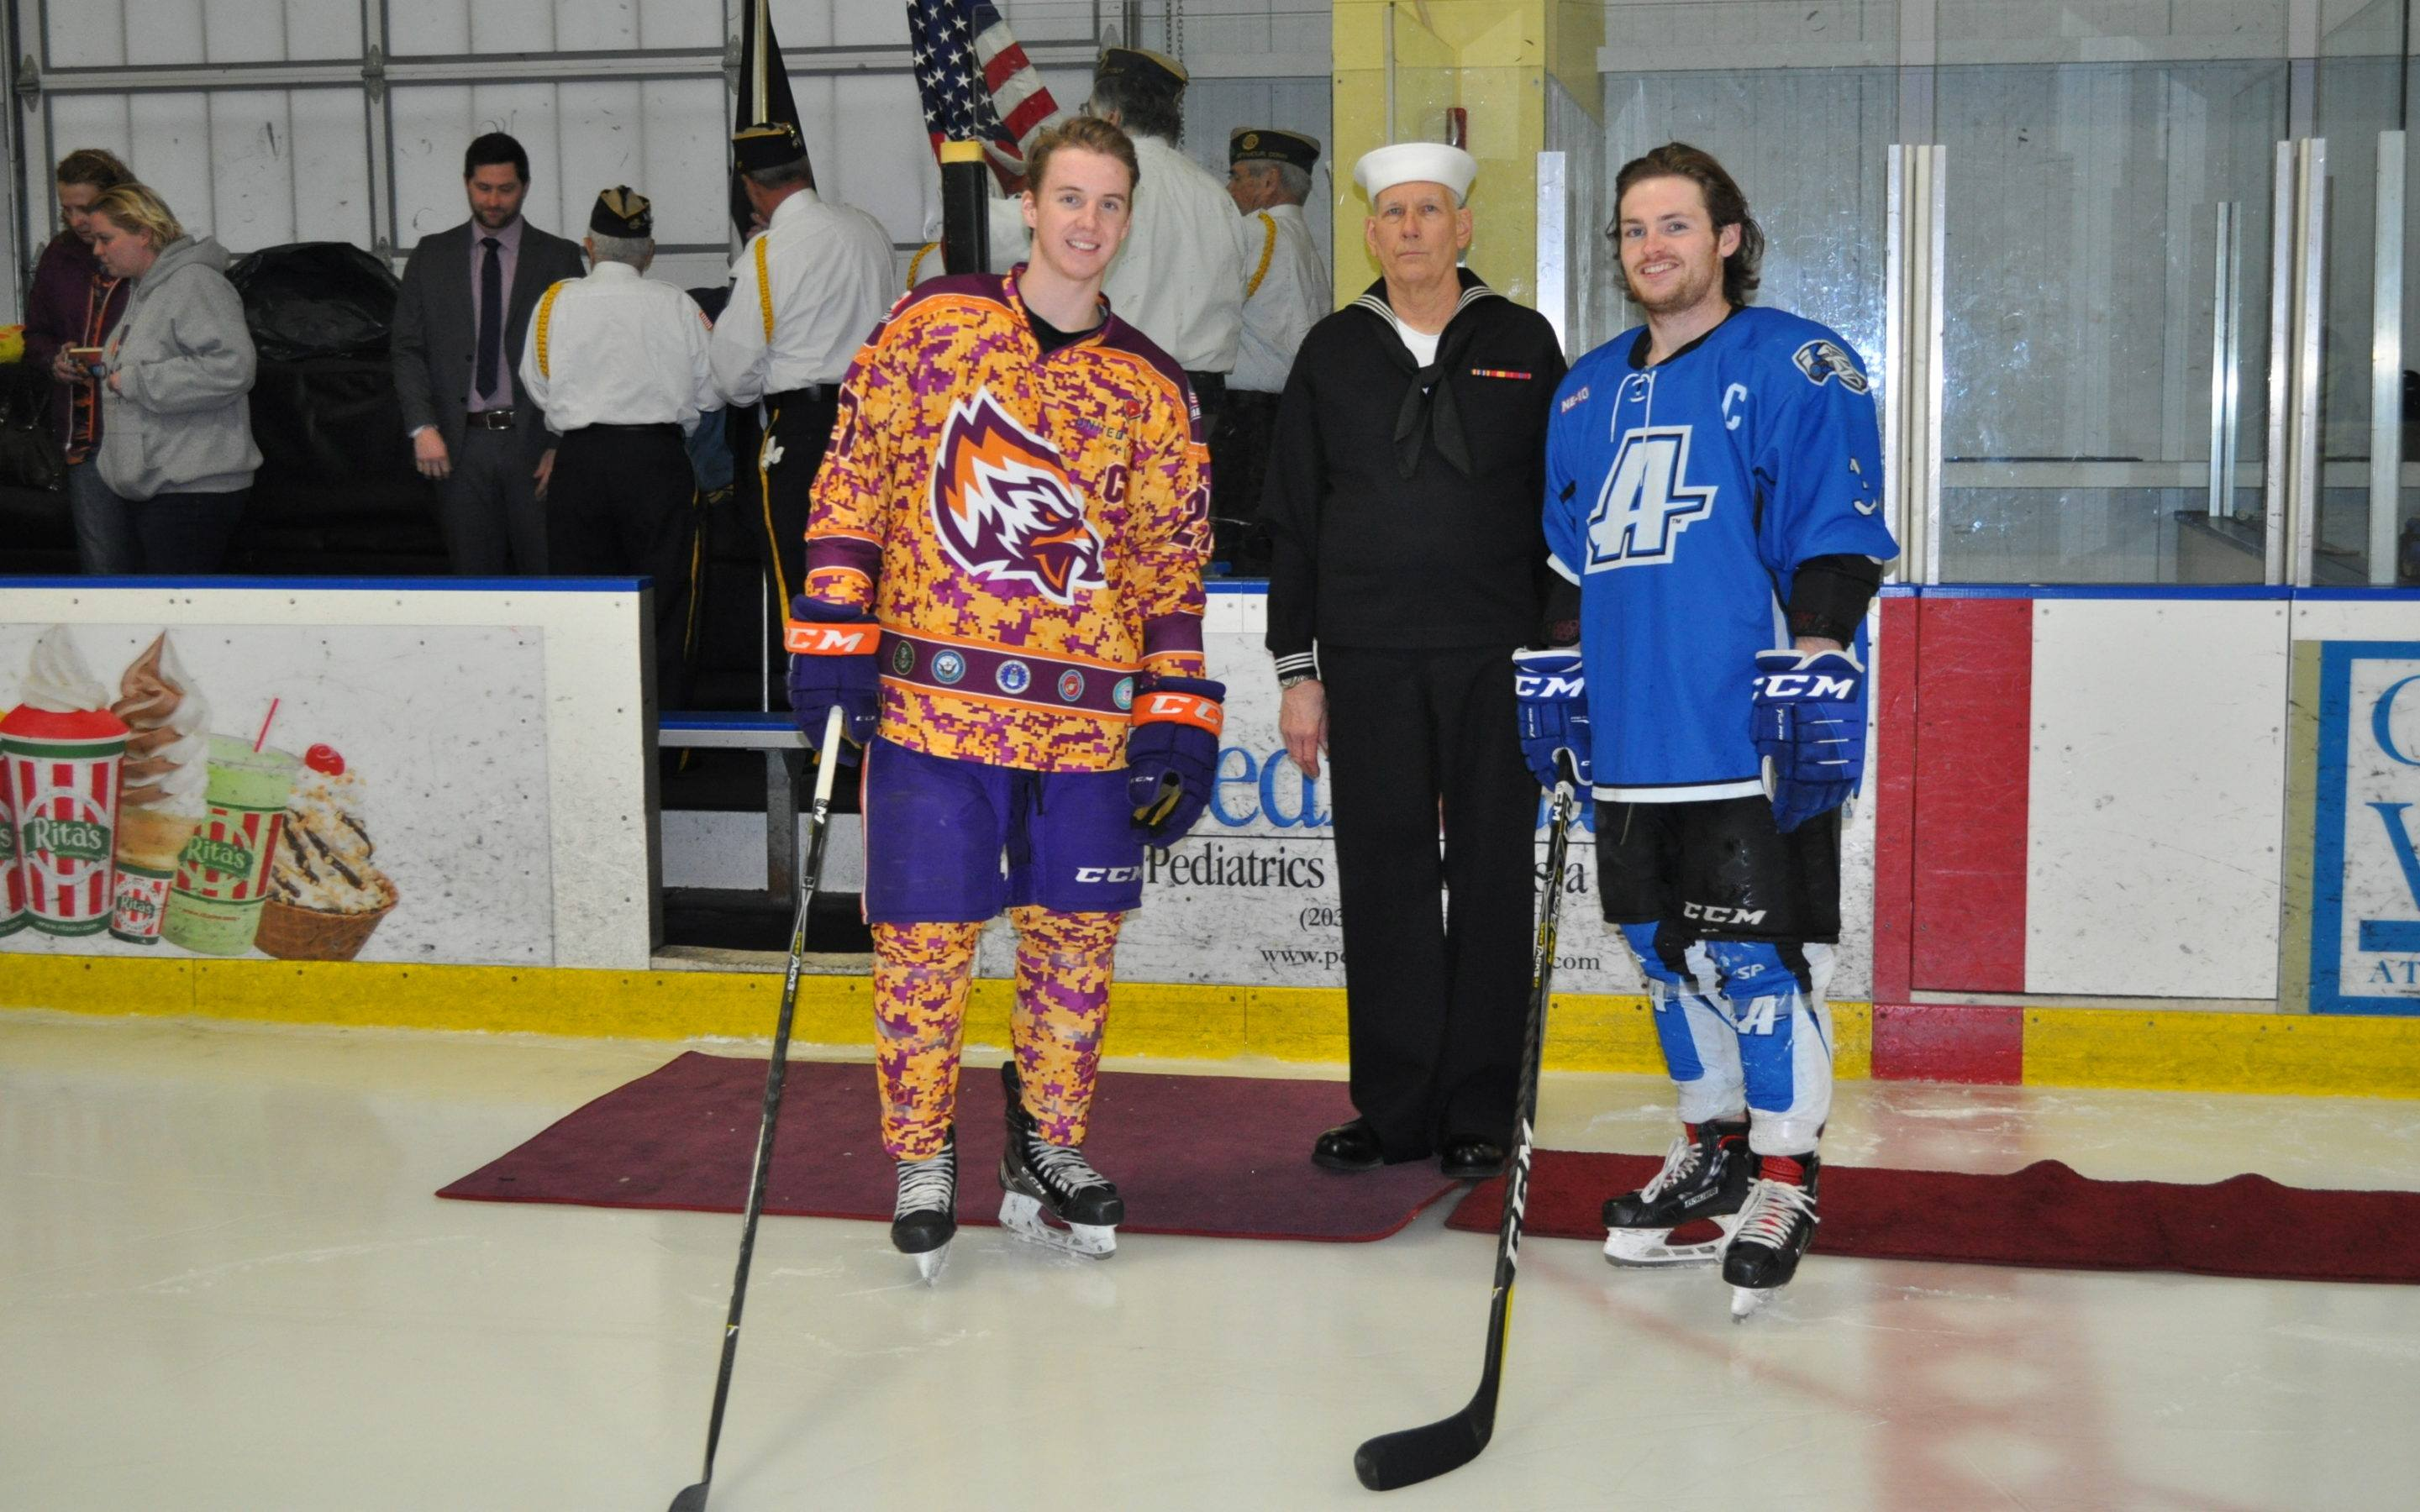 two hockey players and one soldier on ice